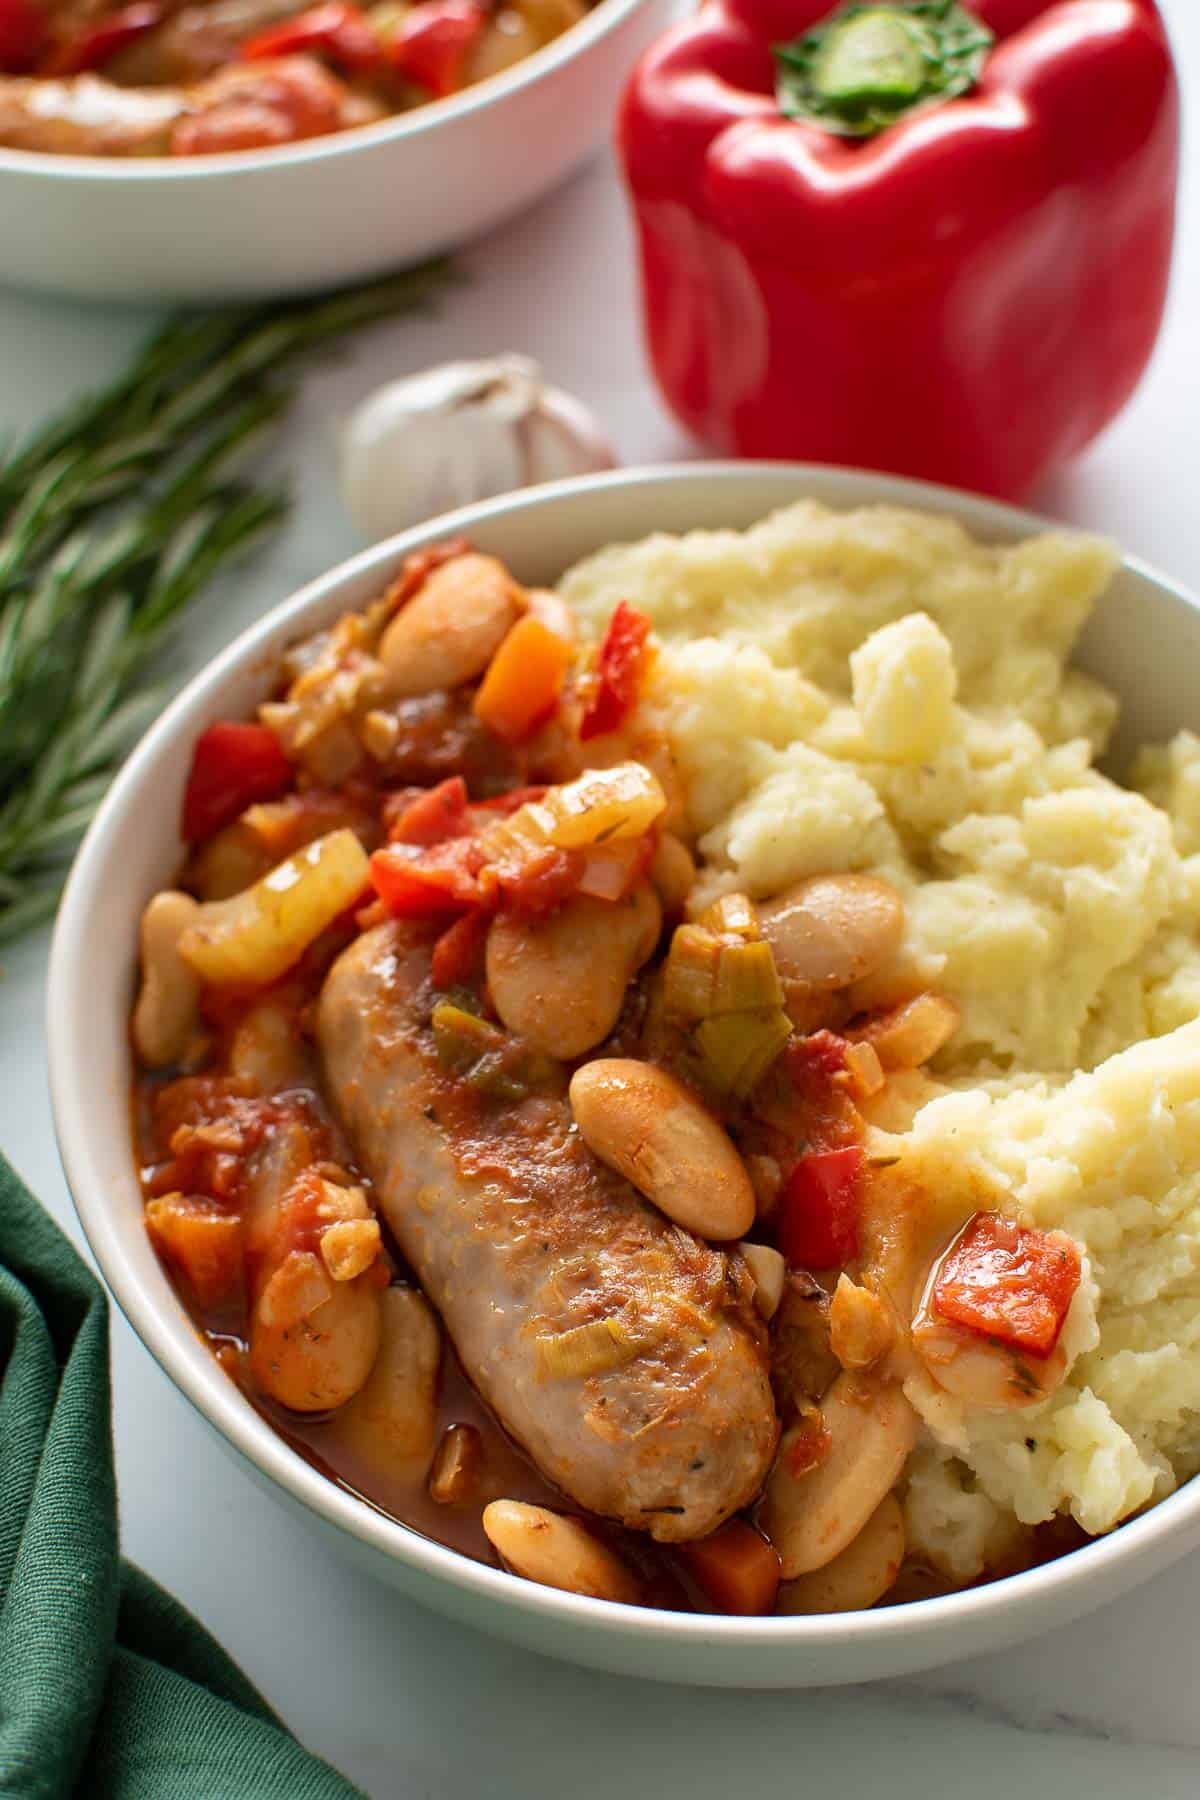 A bowl of sausage casserole and mashed potatoes.